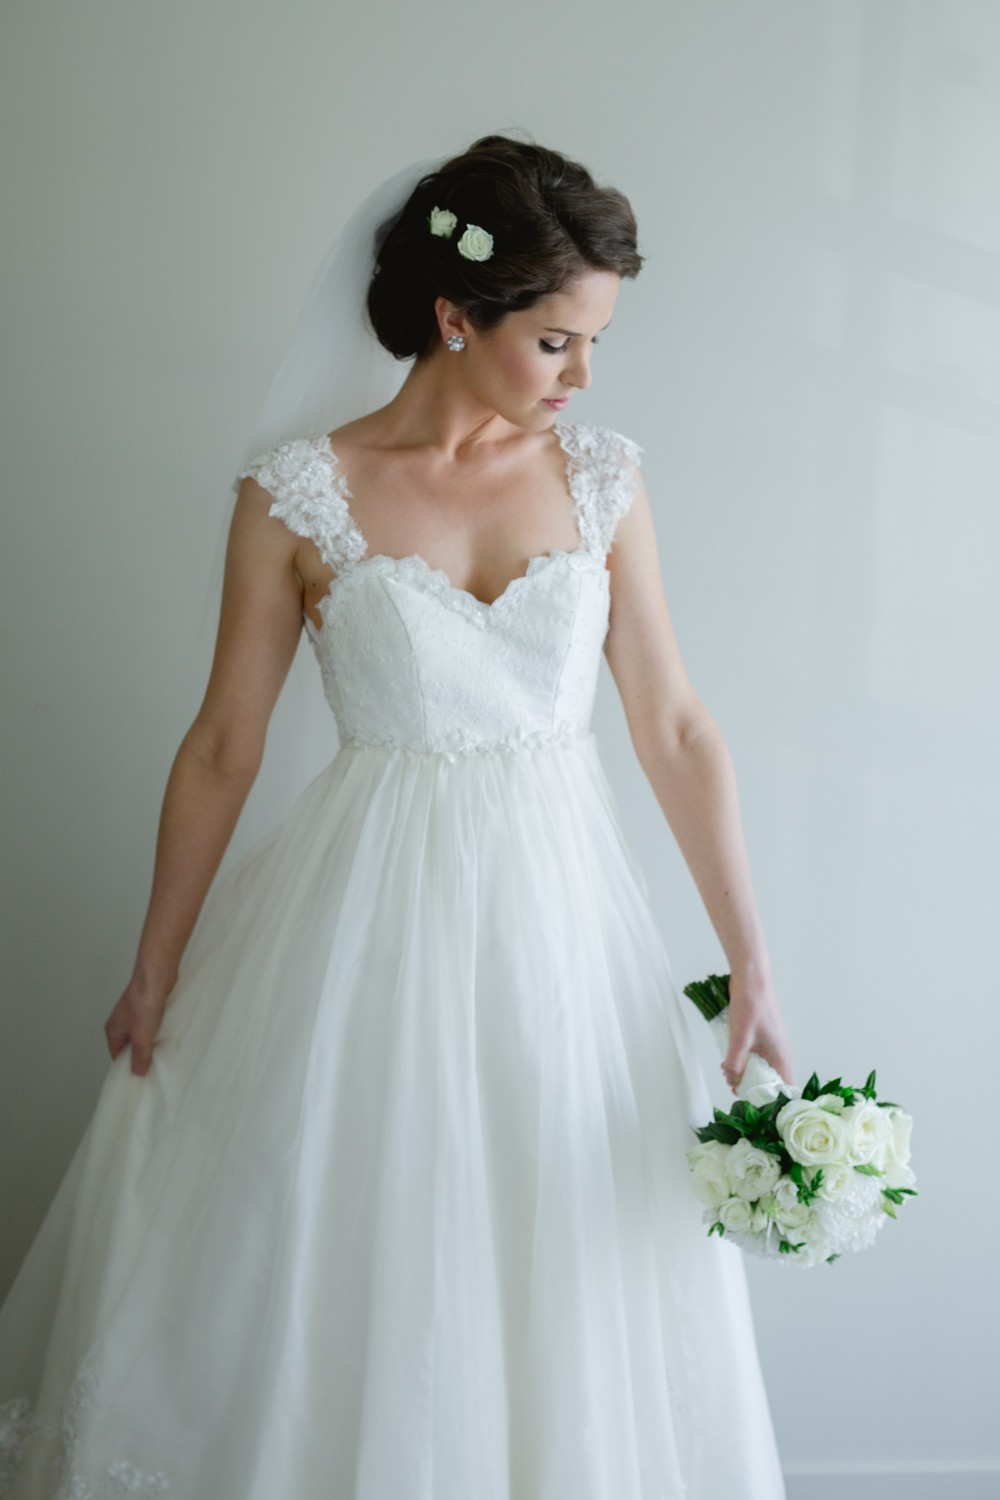 The Little White Dress - Second Hand Wedding Dresses - Stillwhite